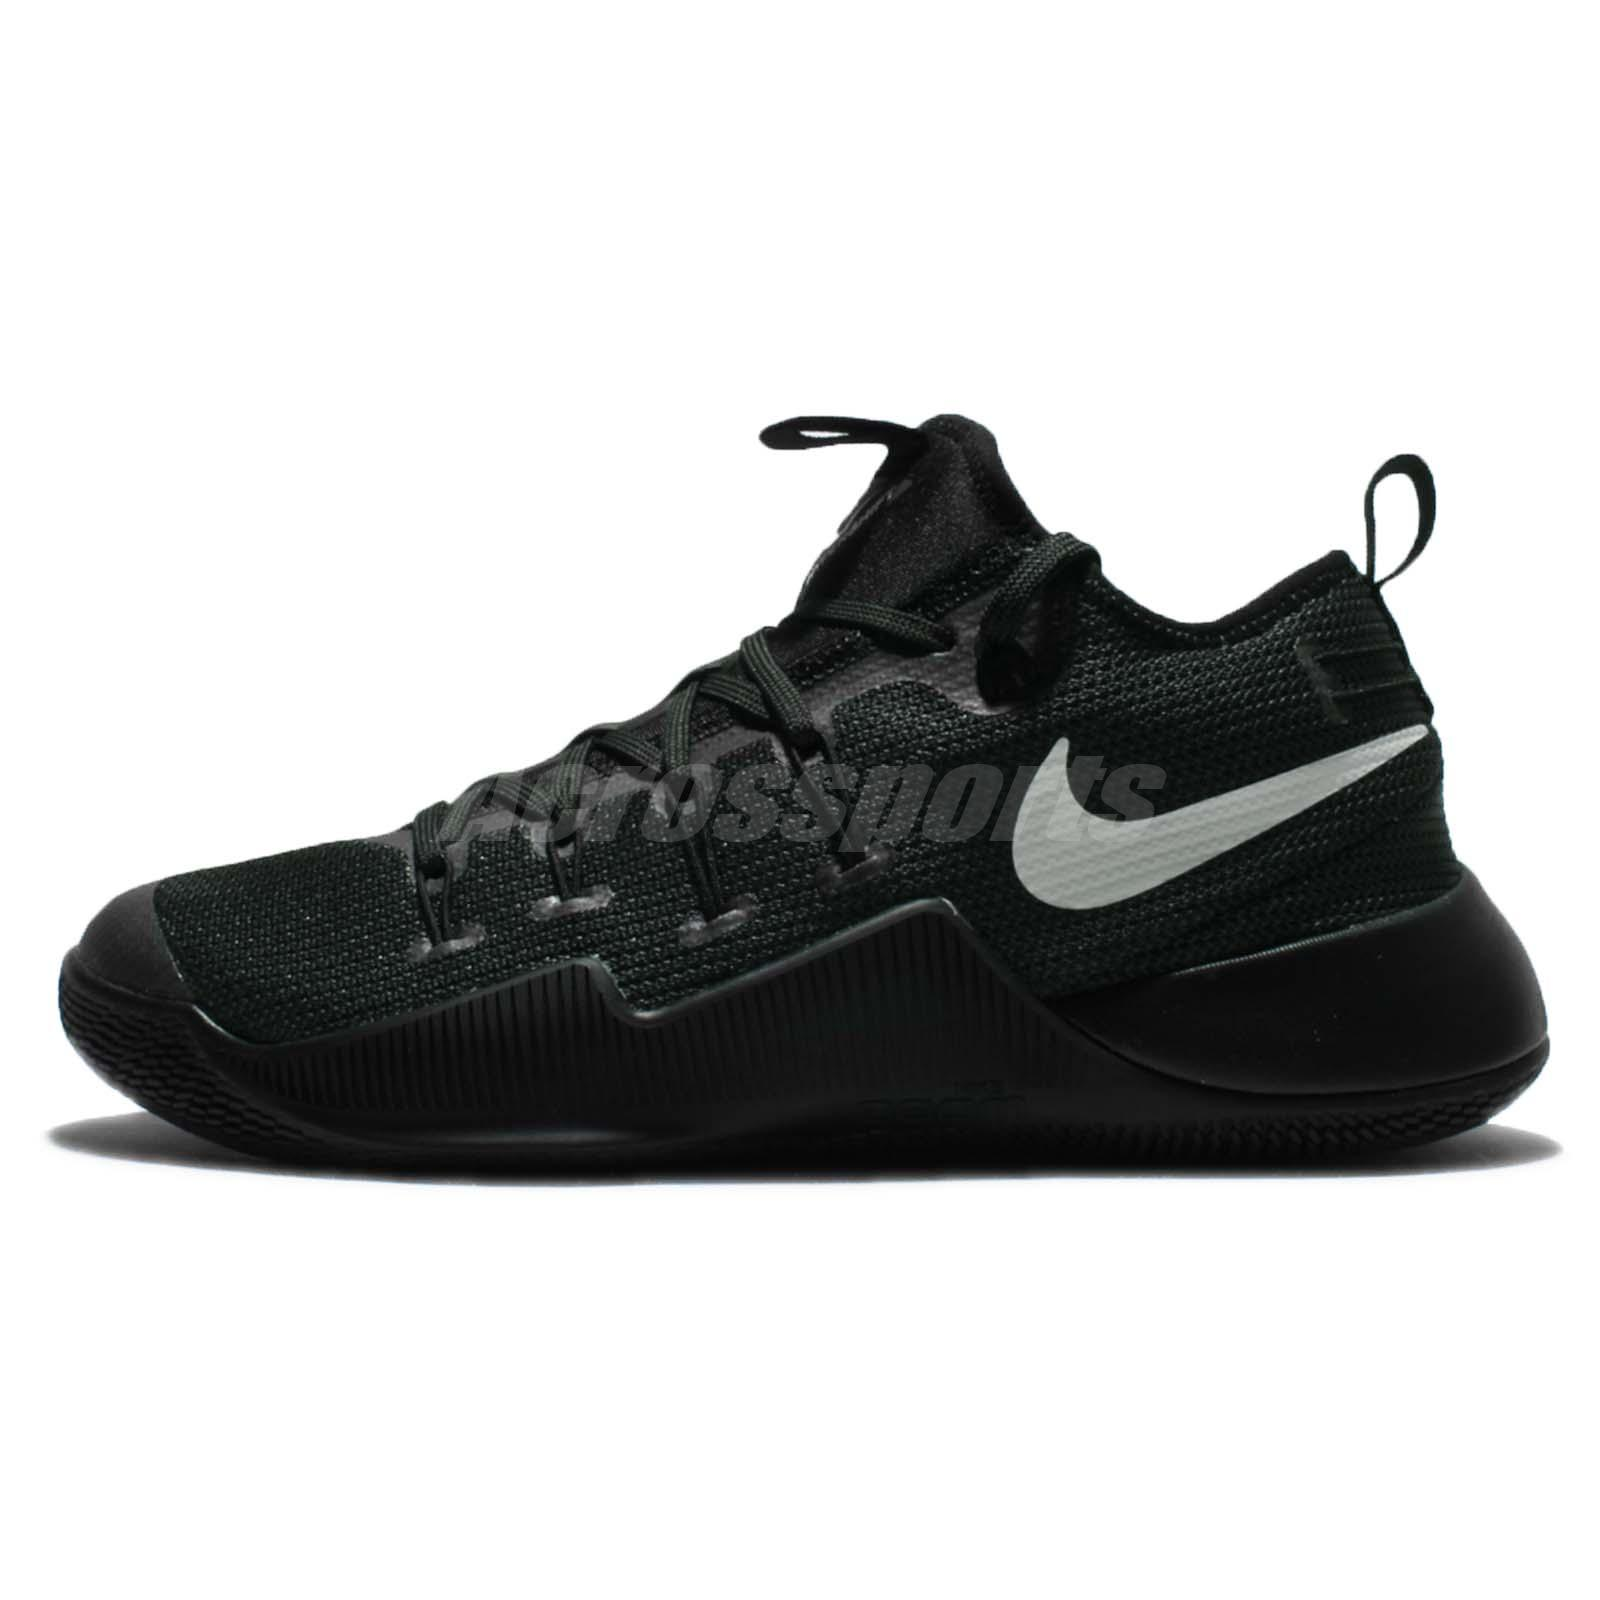 Nike Hypershift Customize